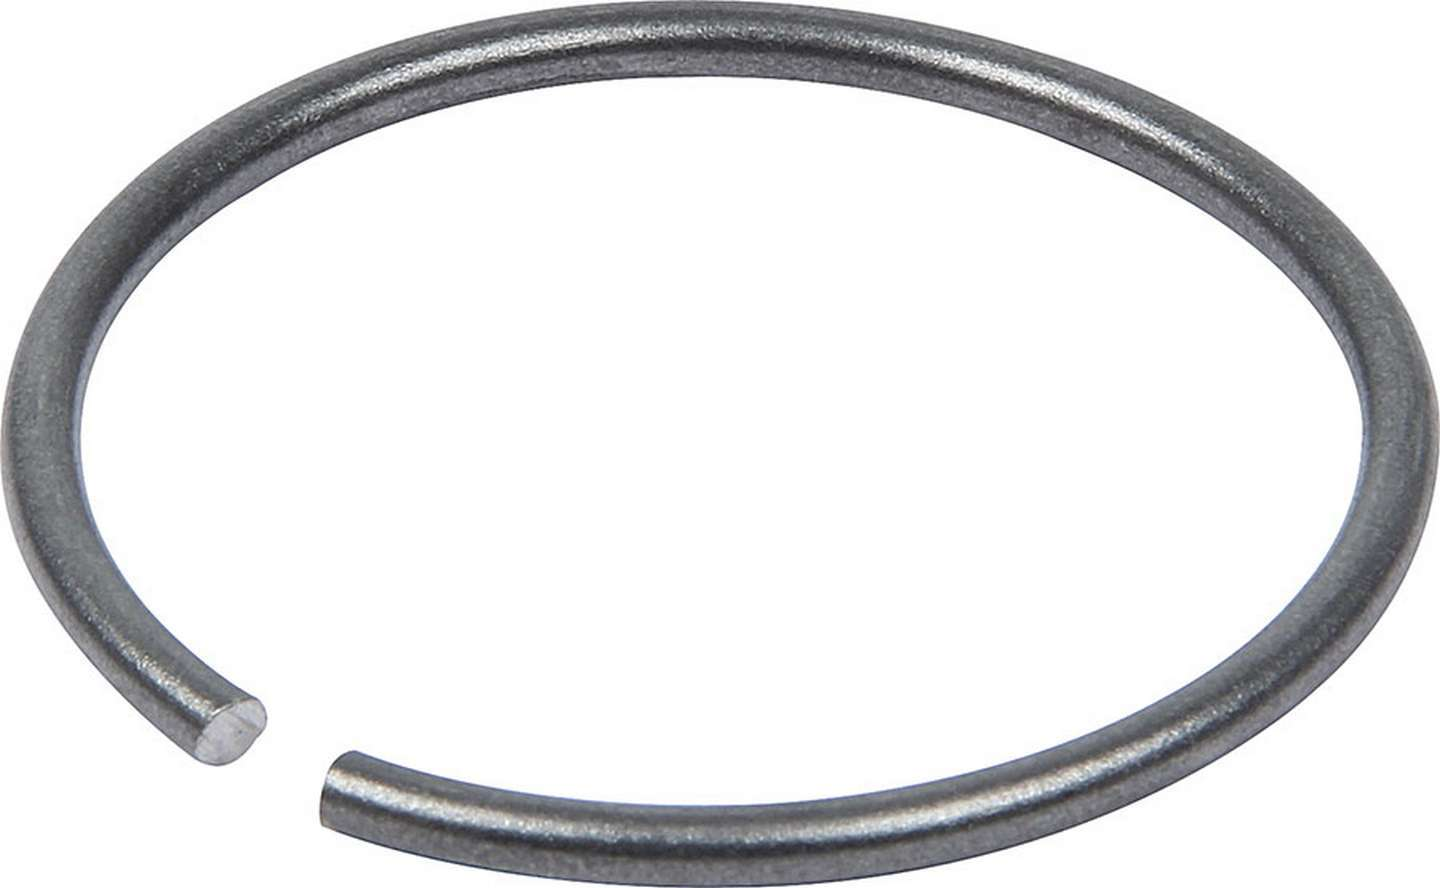 Repl Snap Ring Round